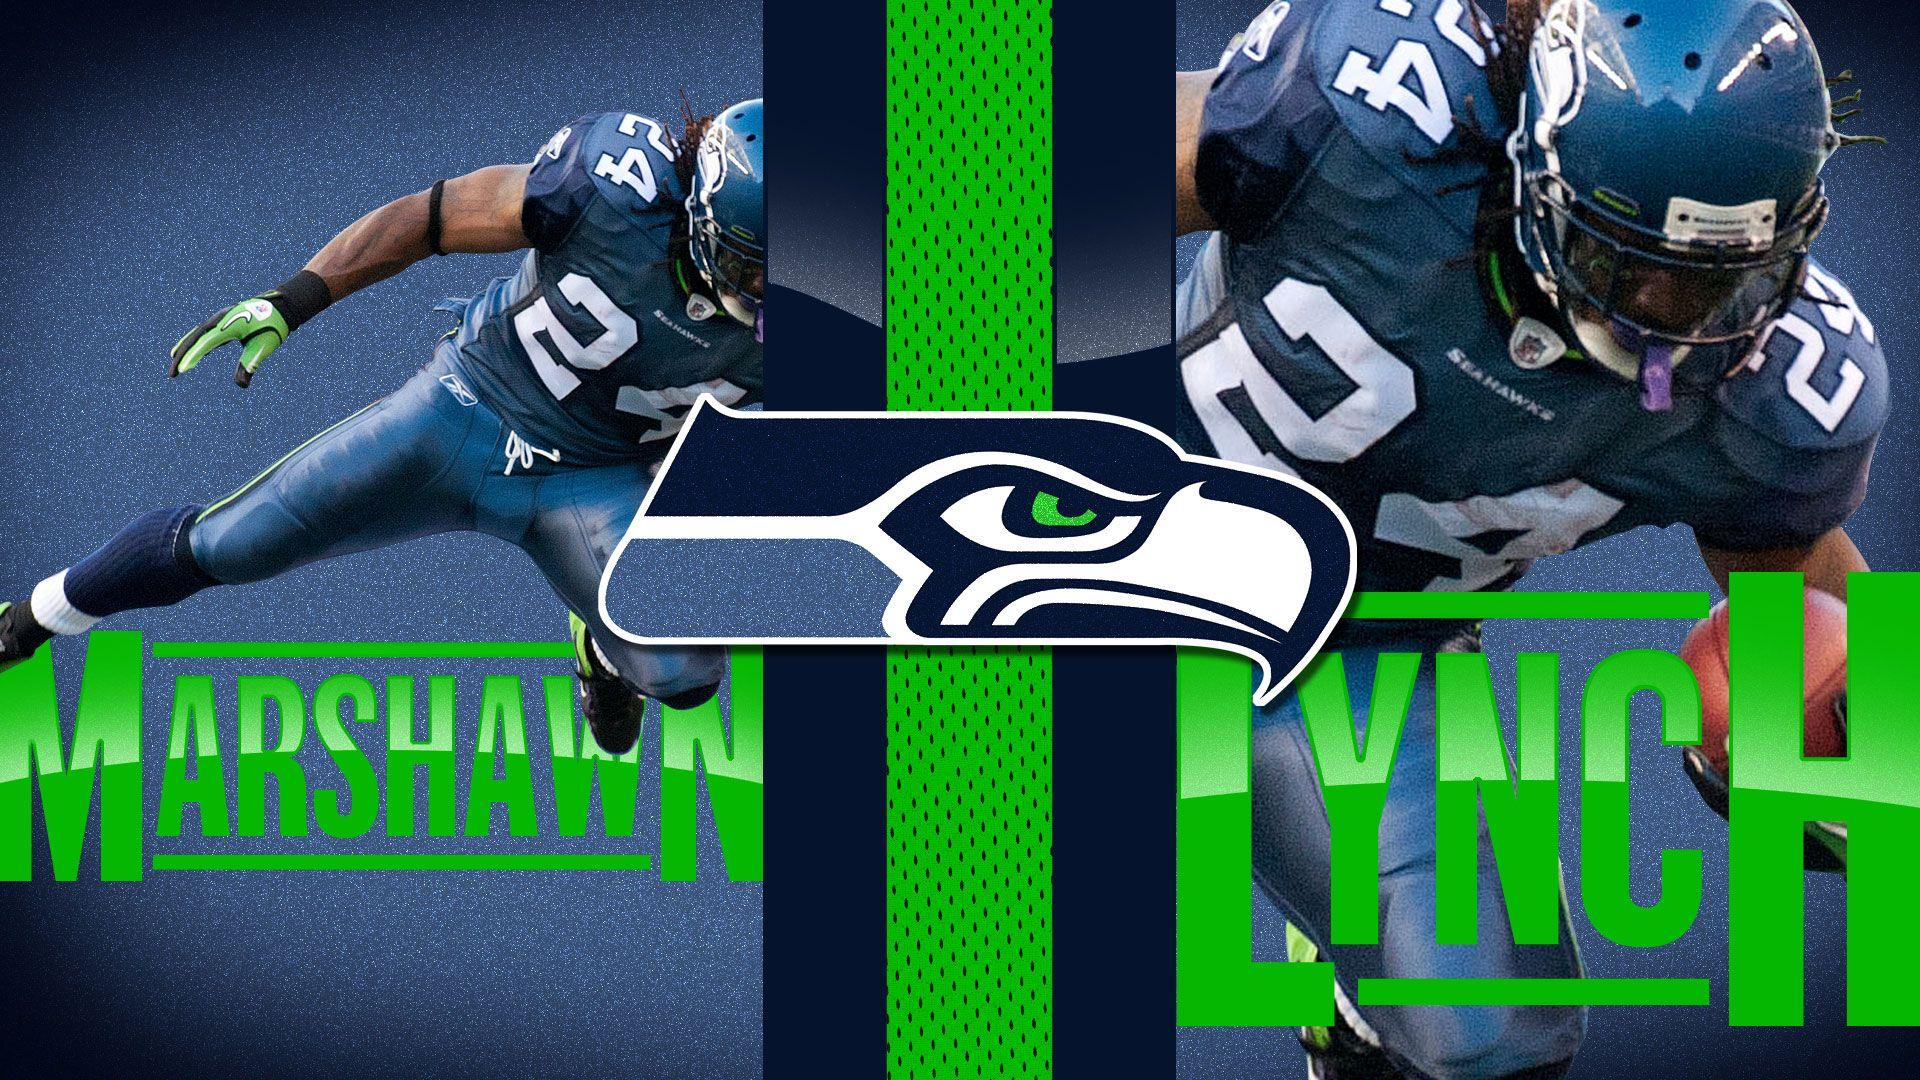 marshawn lynch wallpapers wallpaper cave